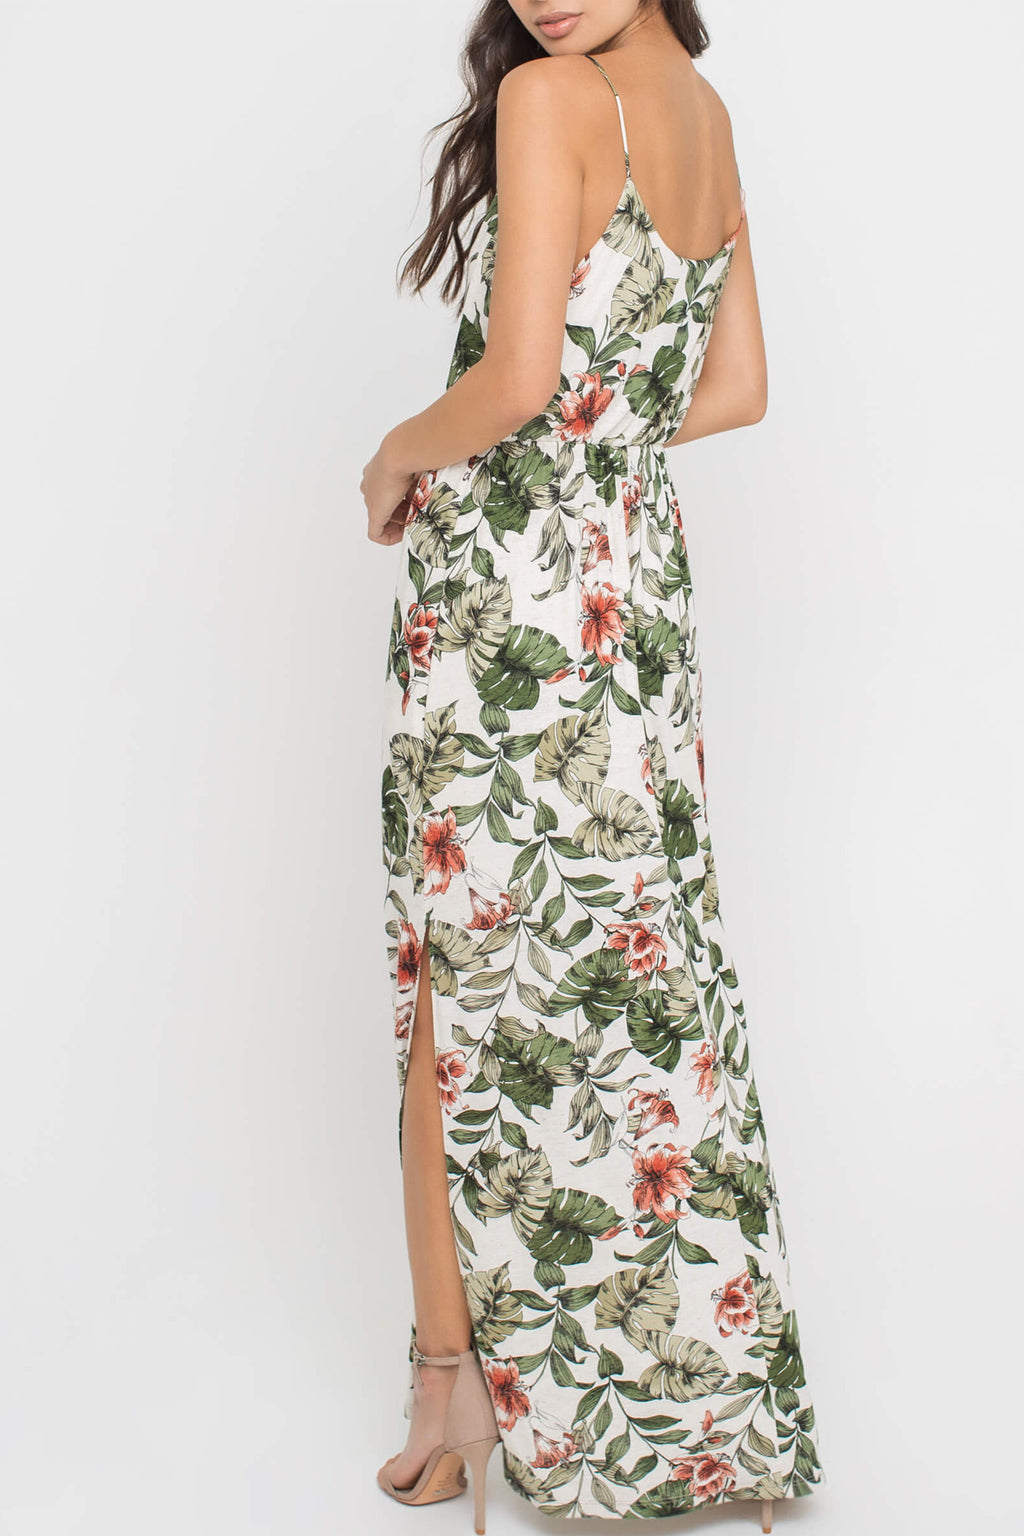 Piper Maxi Dress in Tropical Floral - Boho Bum Island Clothing Swimwear Bohemian Boho west palm beach  Miami florida  fall fashion spring fashion online shopping ootd blogger style swim boutique